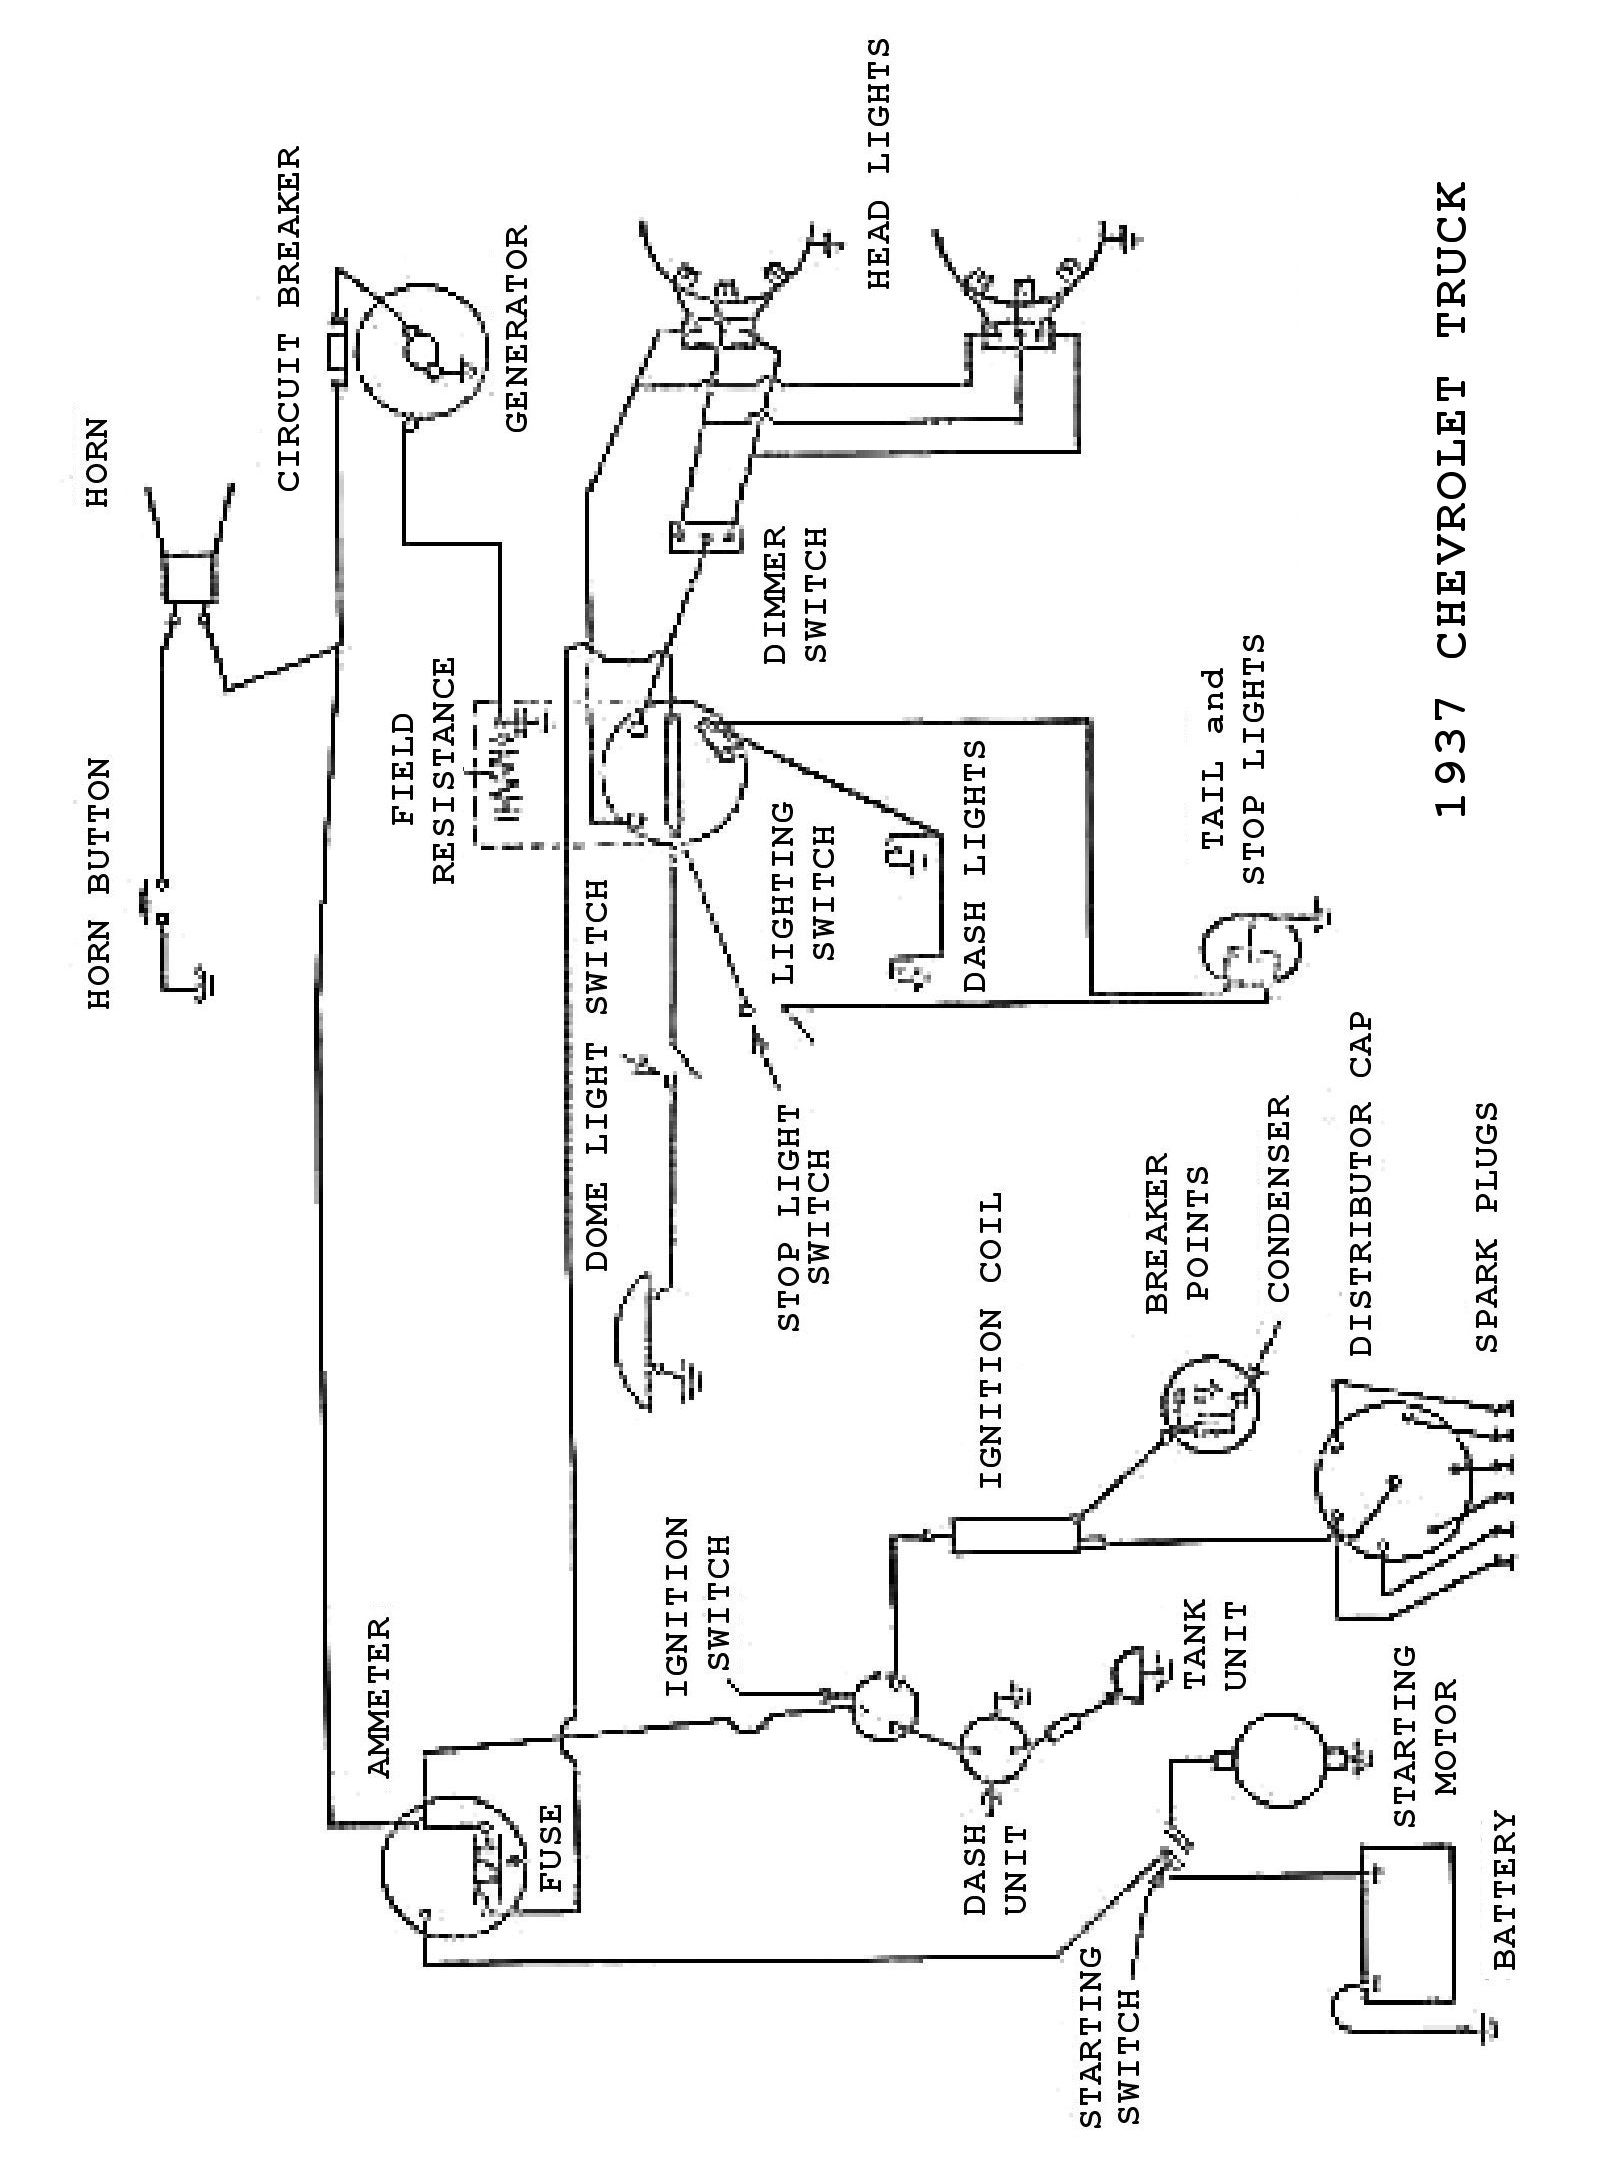 37truck wiring diagram for a 1937 chevy truck wiring diagram simonand 1950 chevy truck wiring diagram at alyssarenee.co